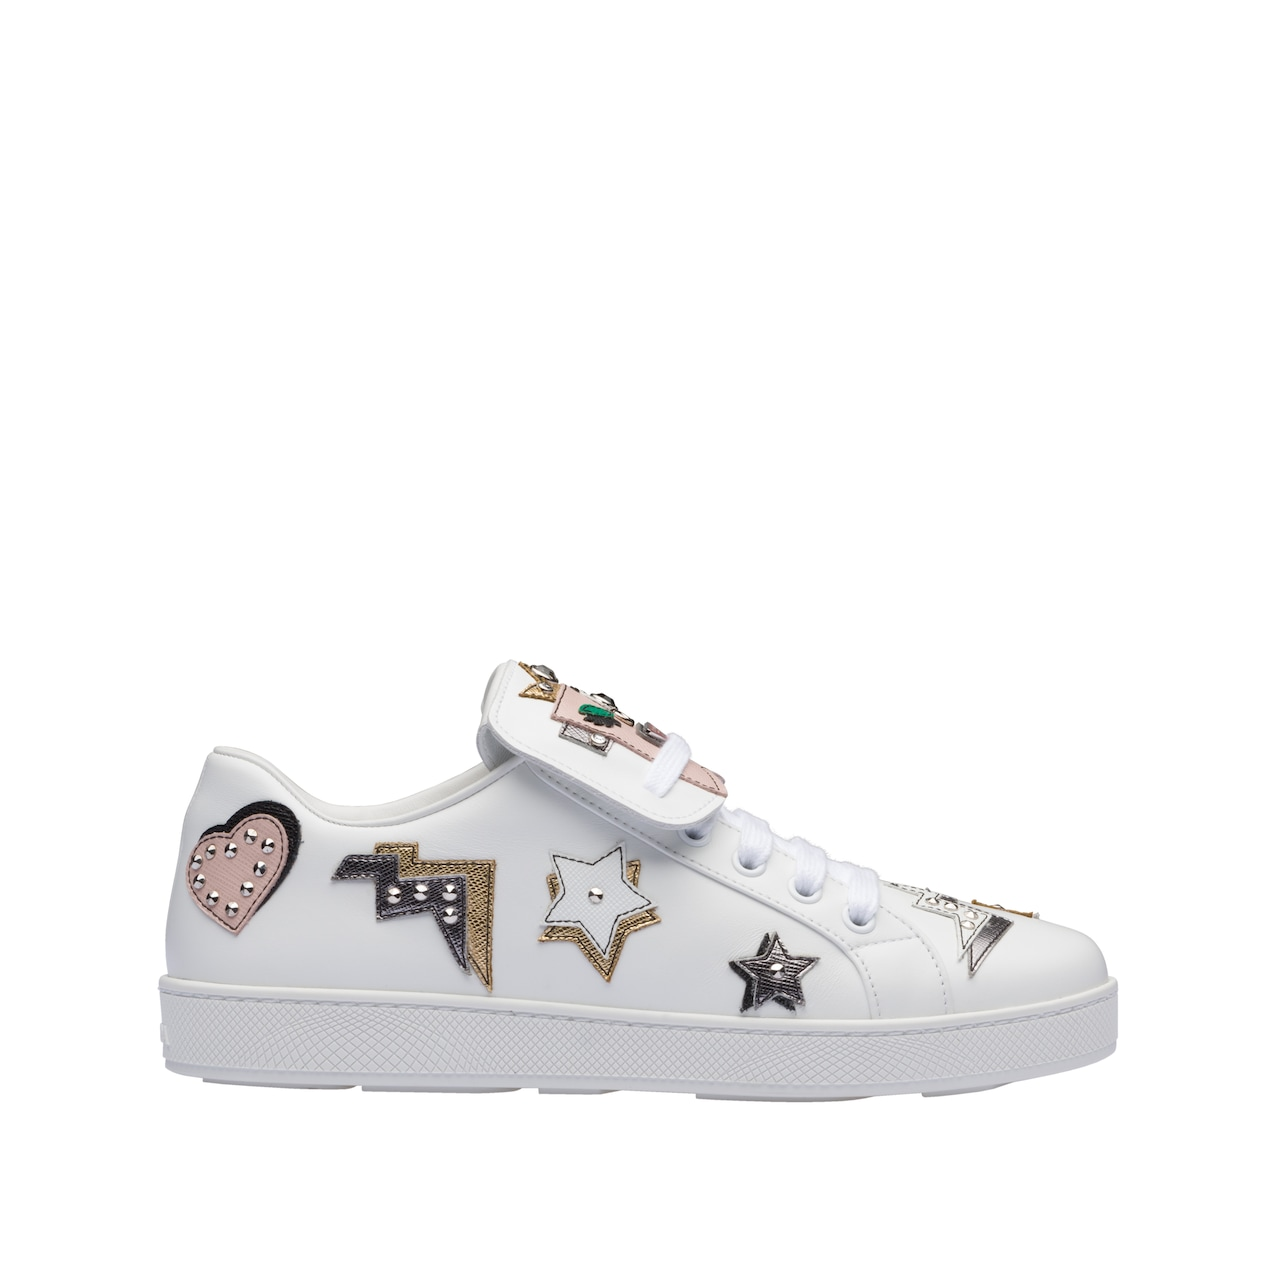 Leather and Saffiano leather sneakers